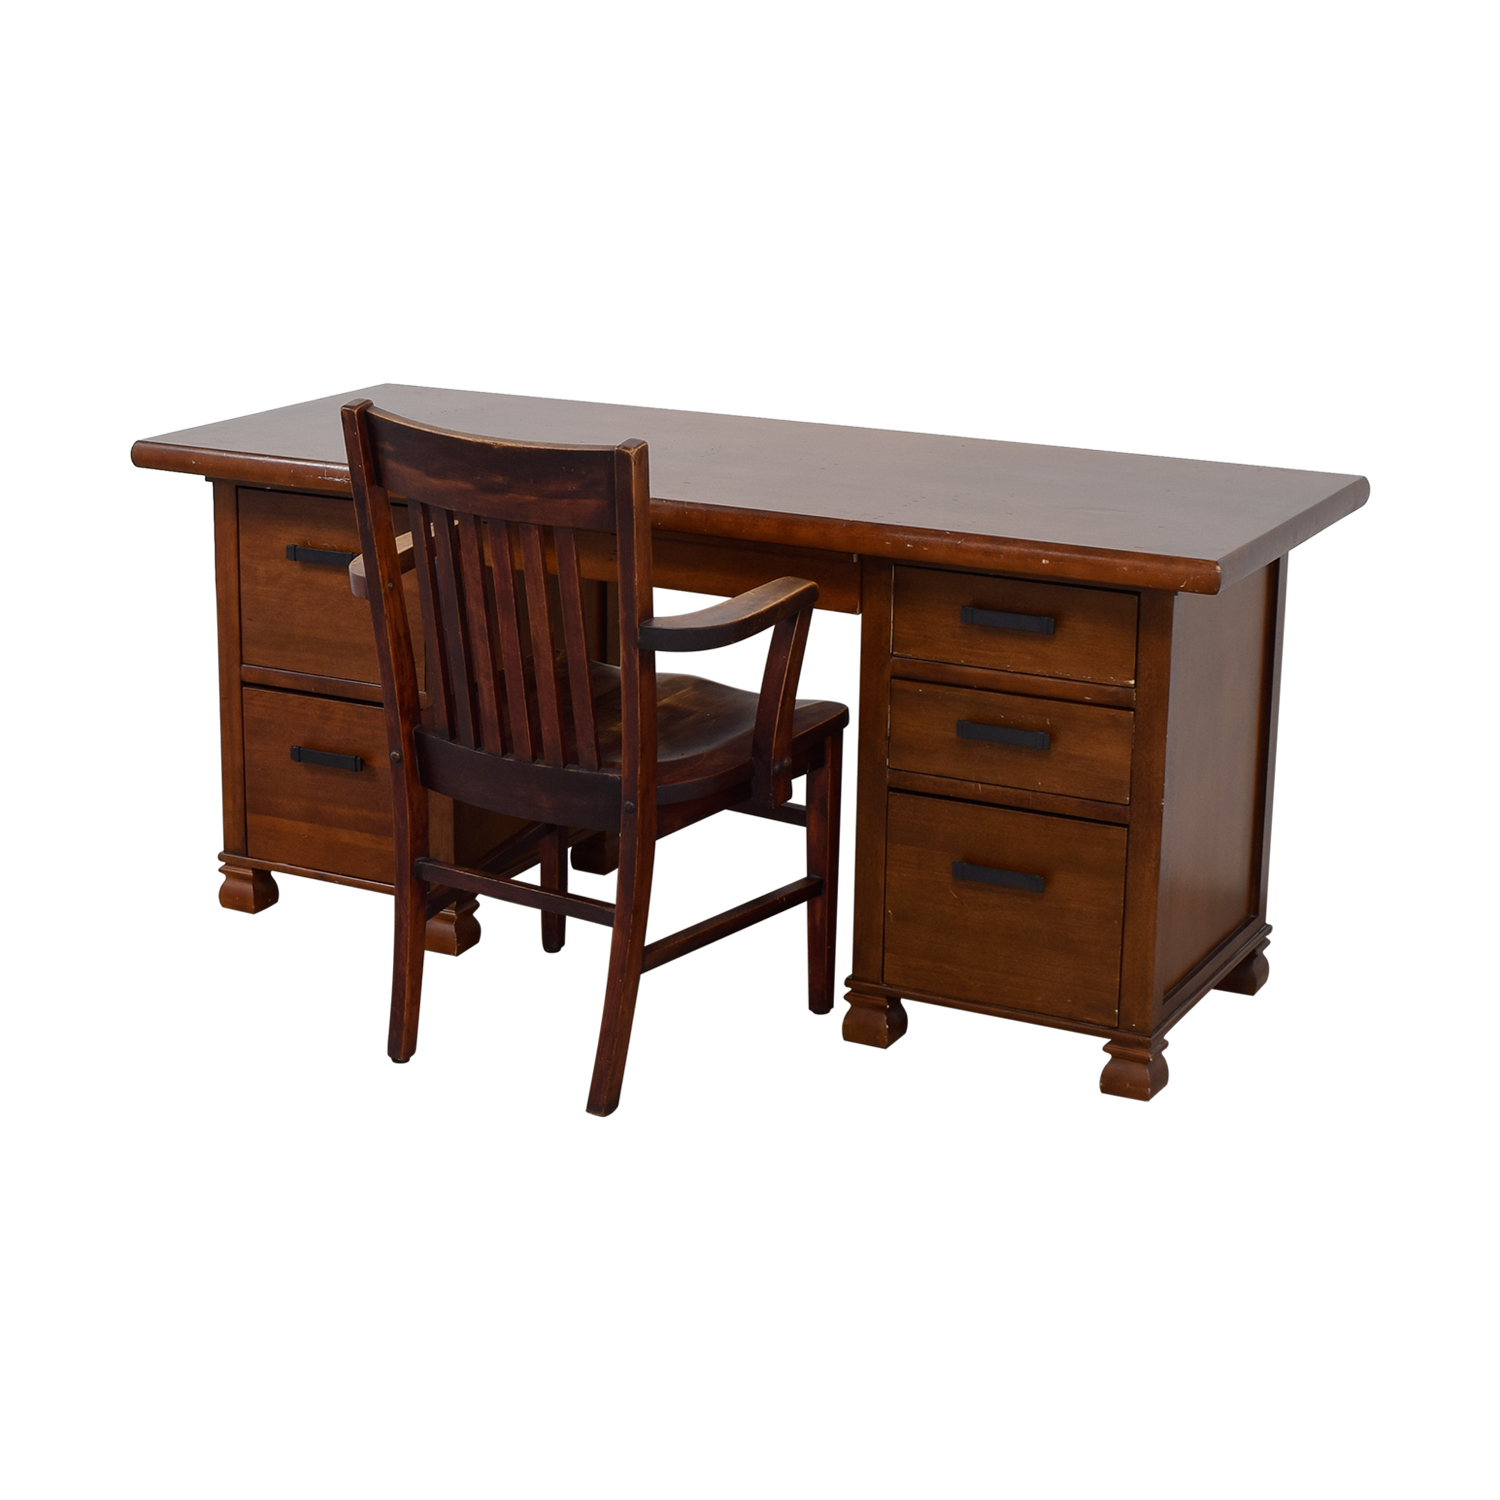 Pottery Barn Pottery Barn Wooden Cherry Desk with Chair for sale